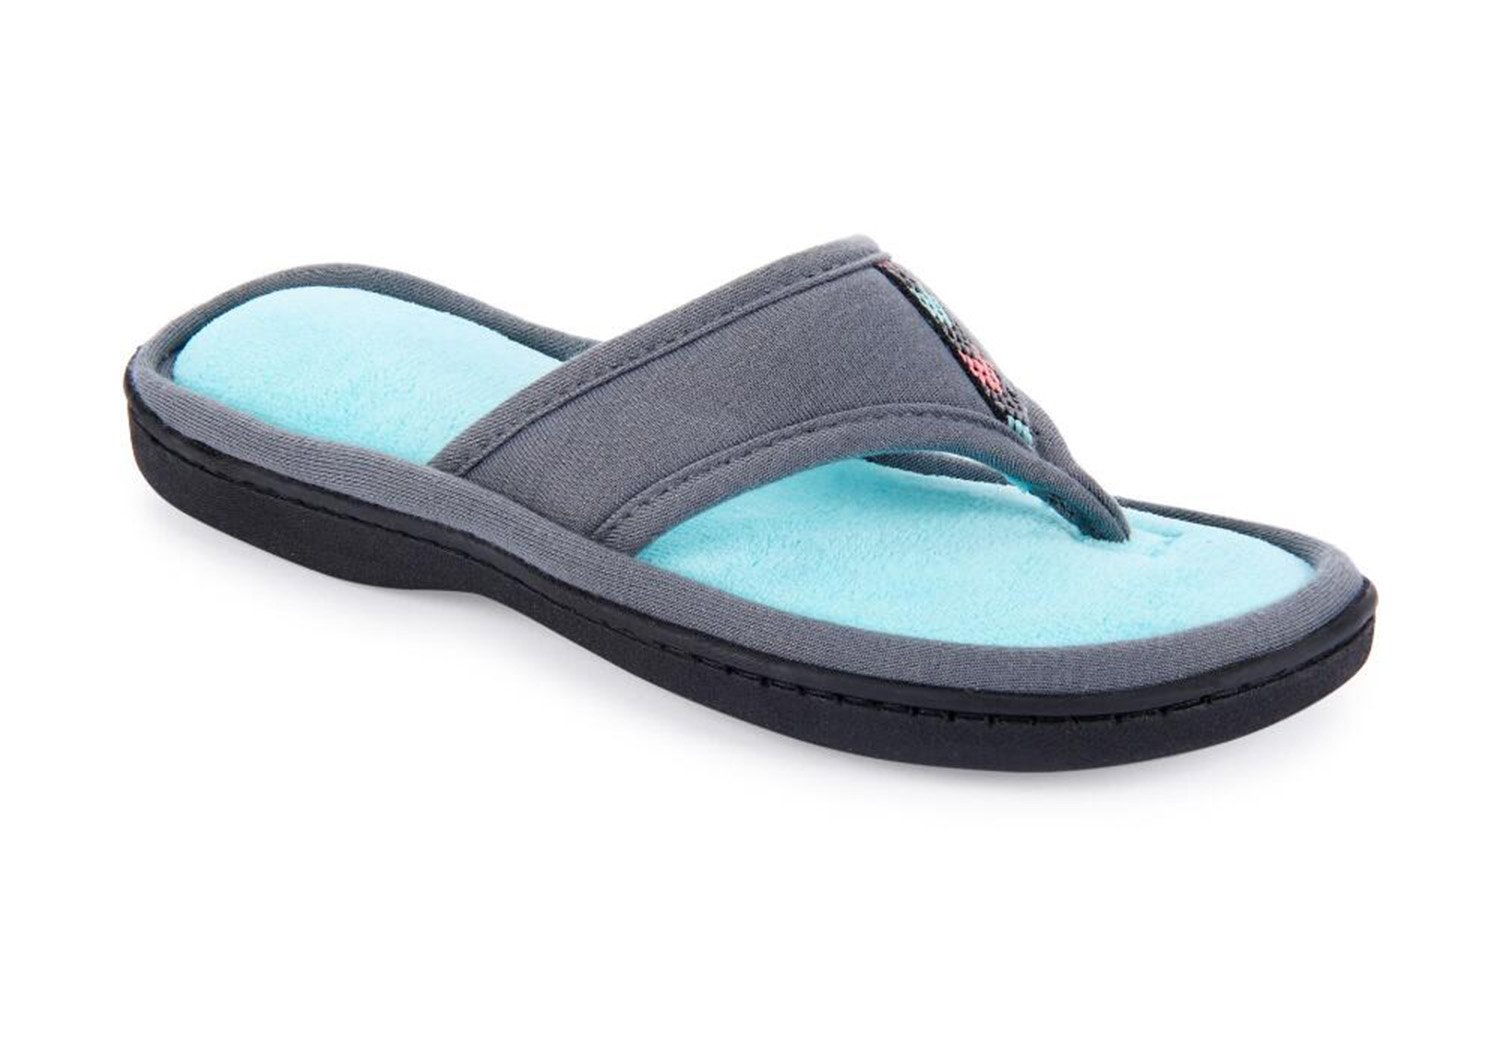 ISOTONER Jersey Luna Women's Summer Thong Slippers Flip Flop Style with Foam Cushion (Large (8.5-9), Ash)